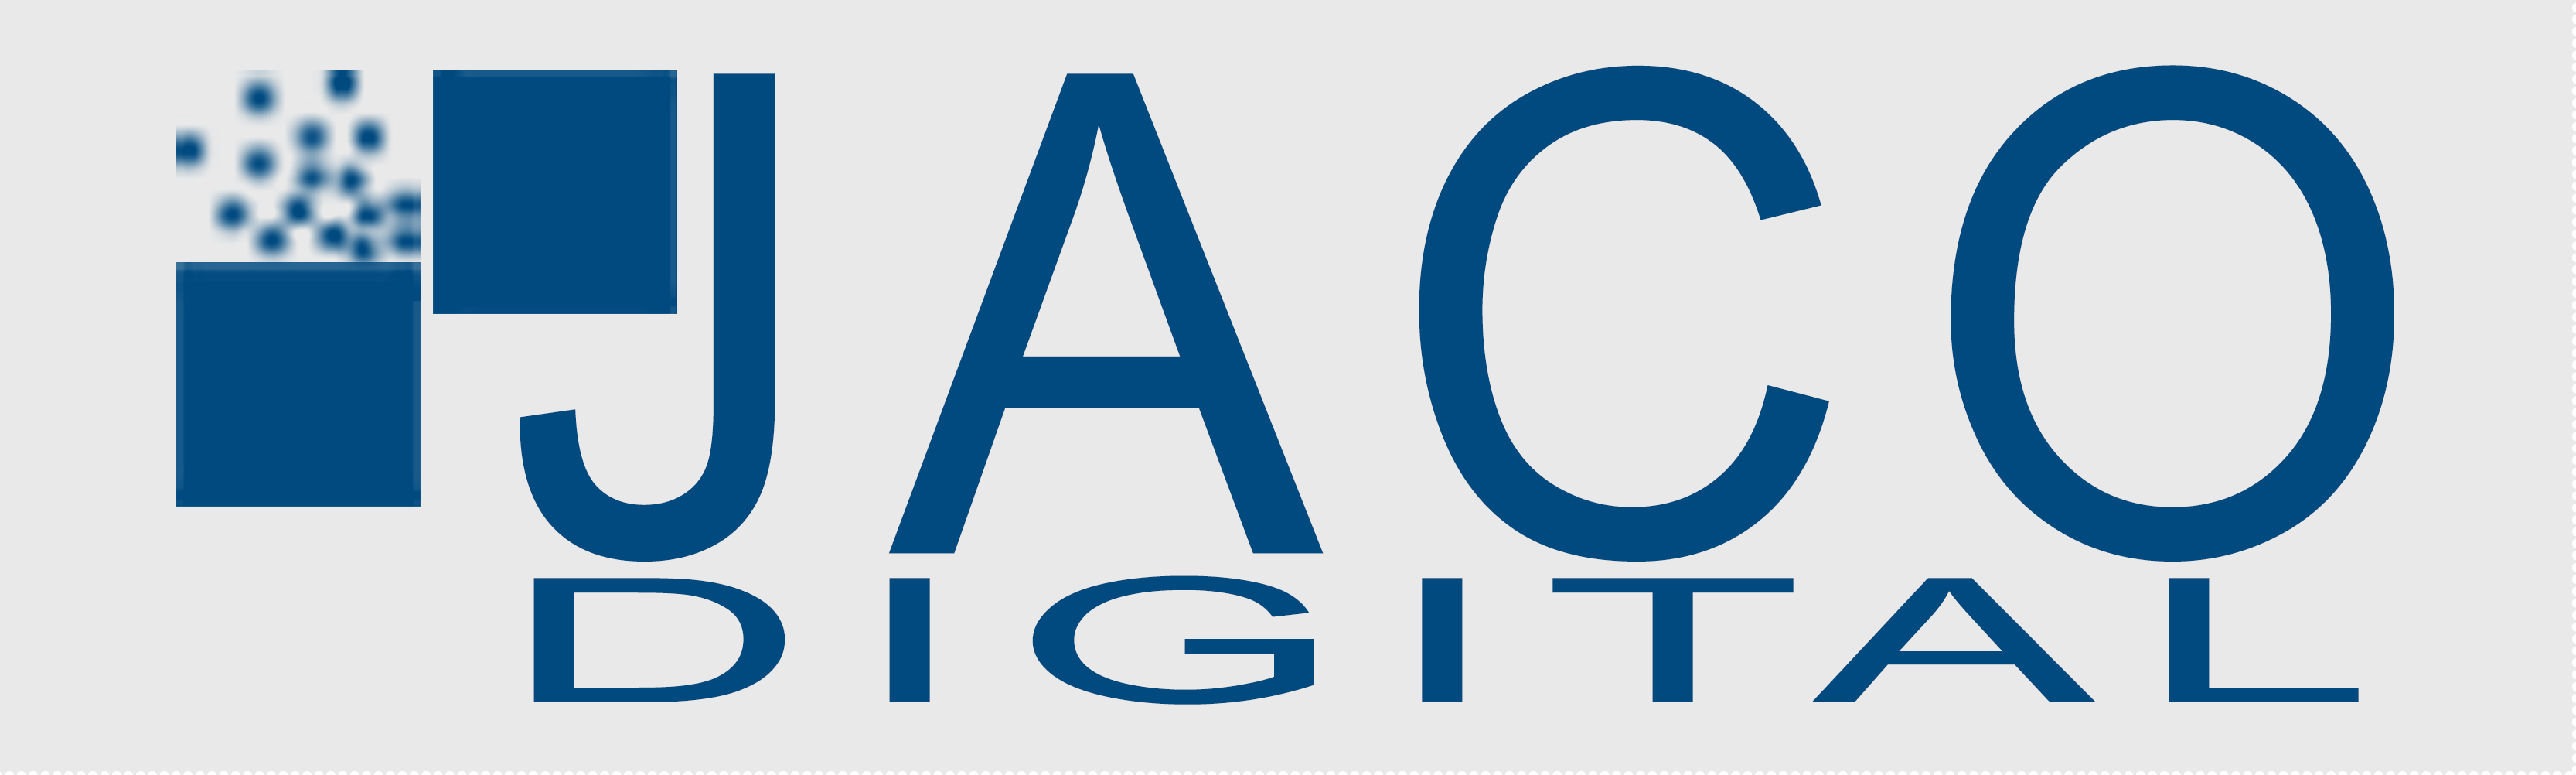 JACO Digital - Trademark Clearinghouse Agents & Domain Name Experts